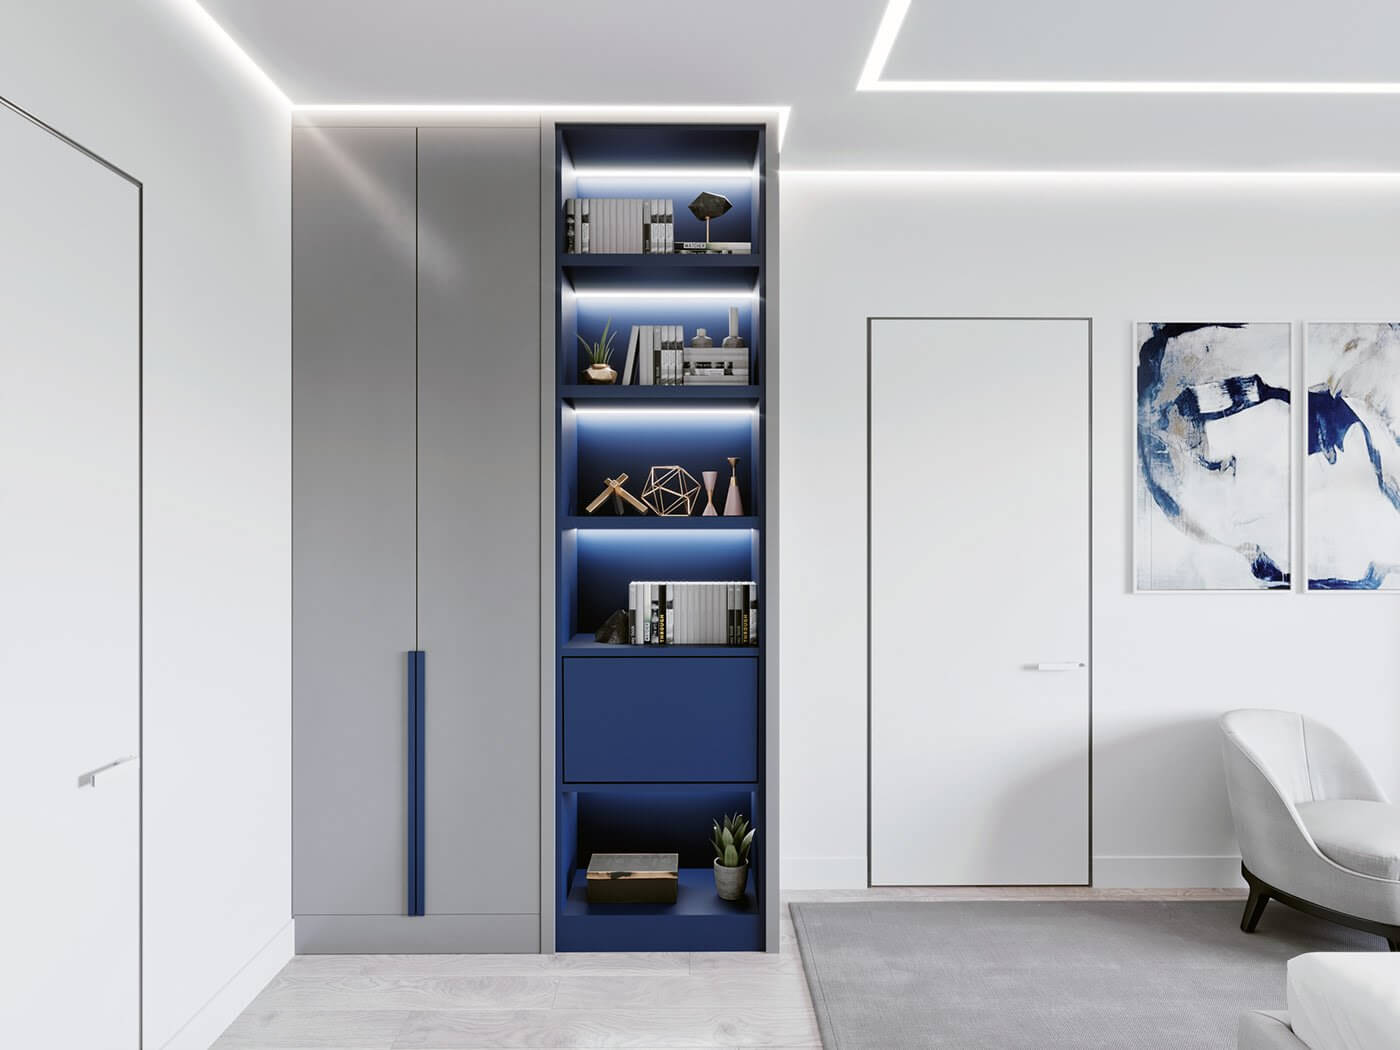 Modern Bedroom interior bookshelf blue back - cgi visualization